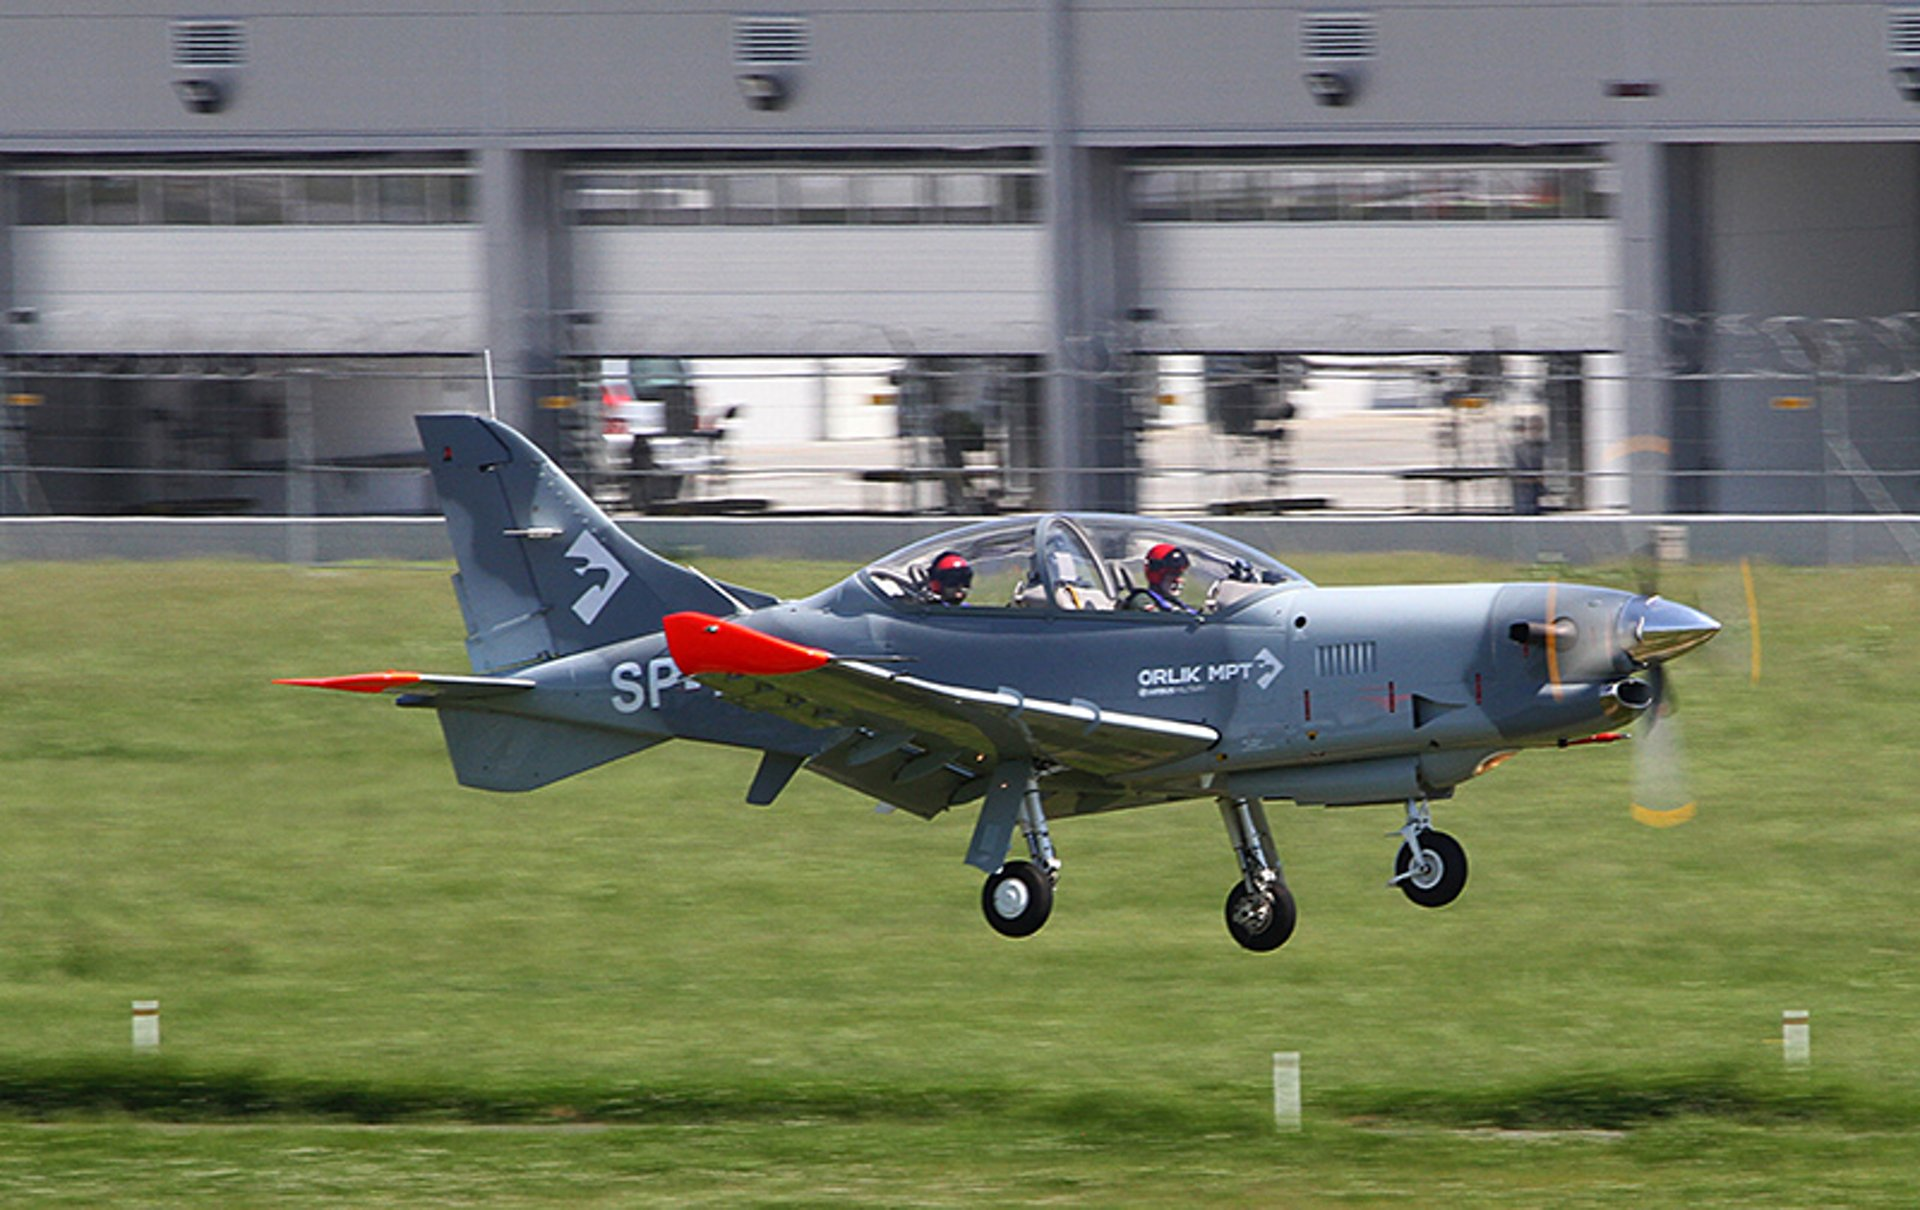 PZL 130 Orlik MPT (Multi Purpose Trainer) aircraft in the air